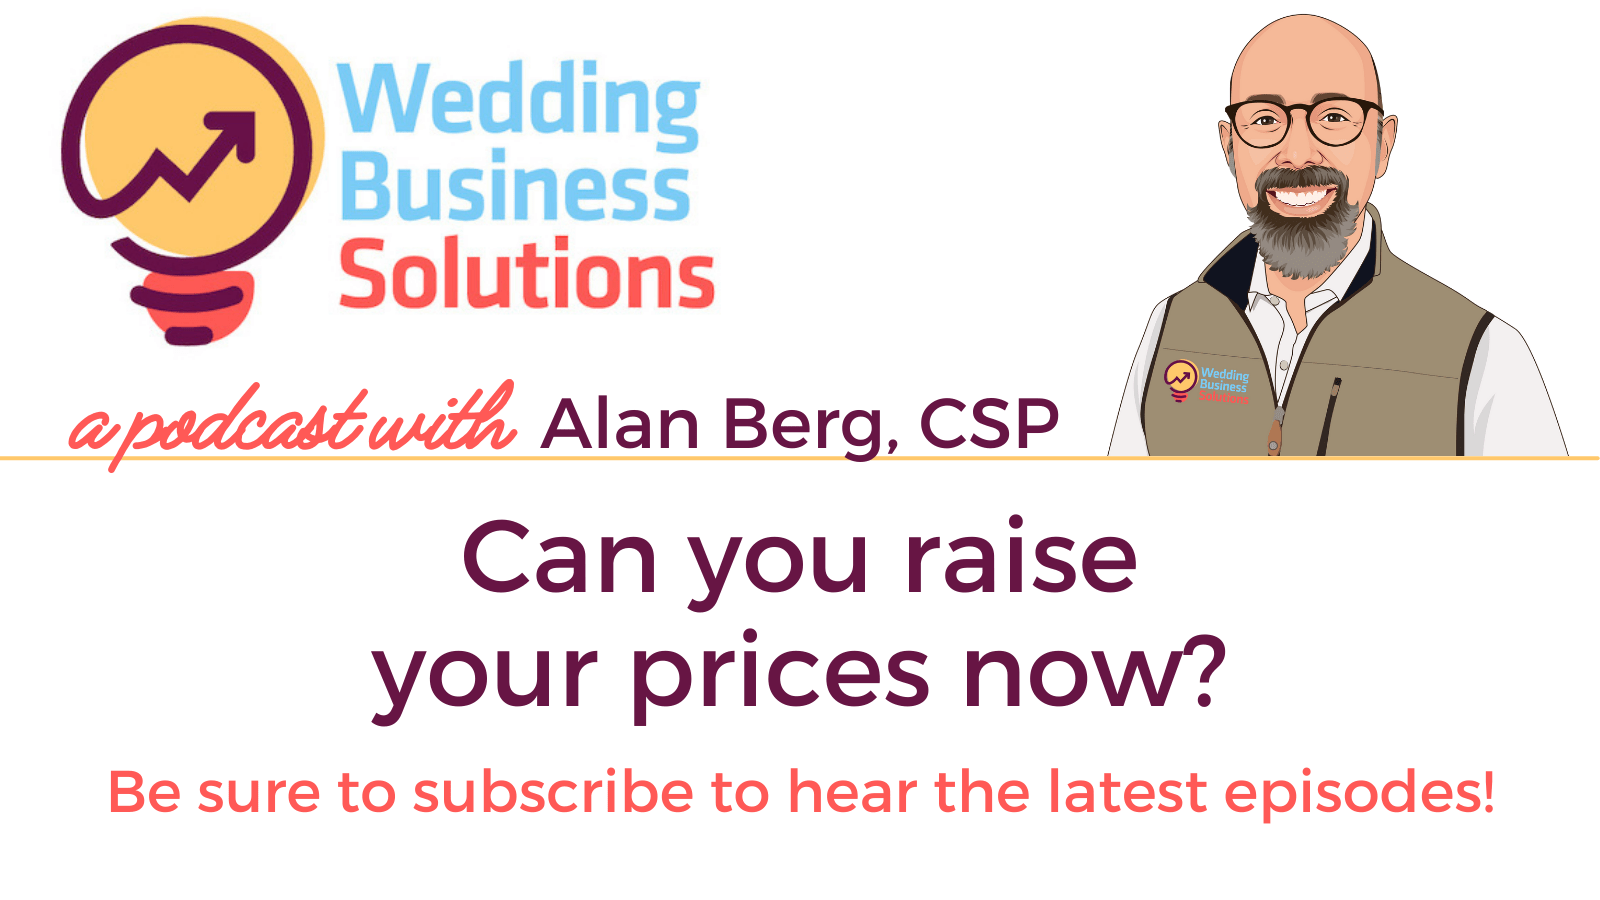 Wedding Business Solutions Podcast - Can you raise your prices now?